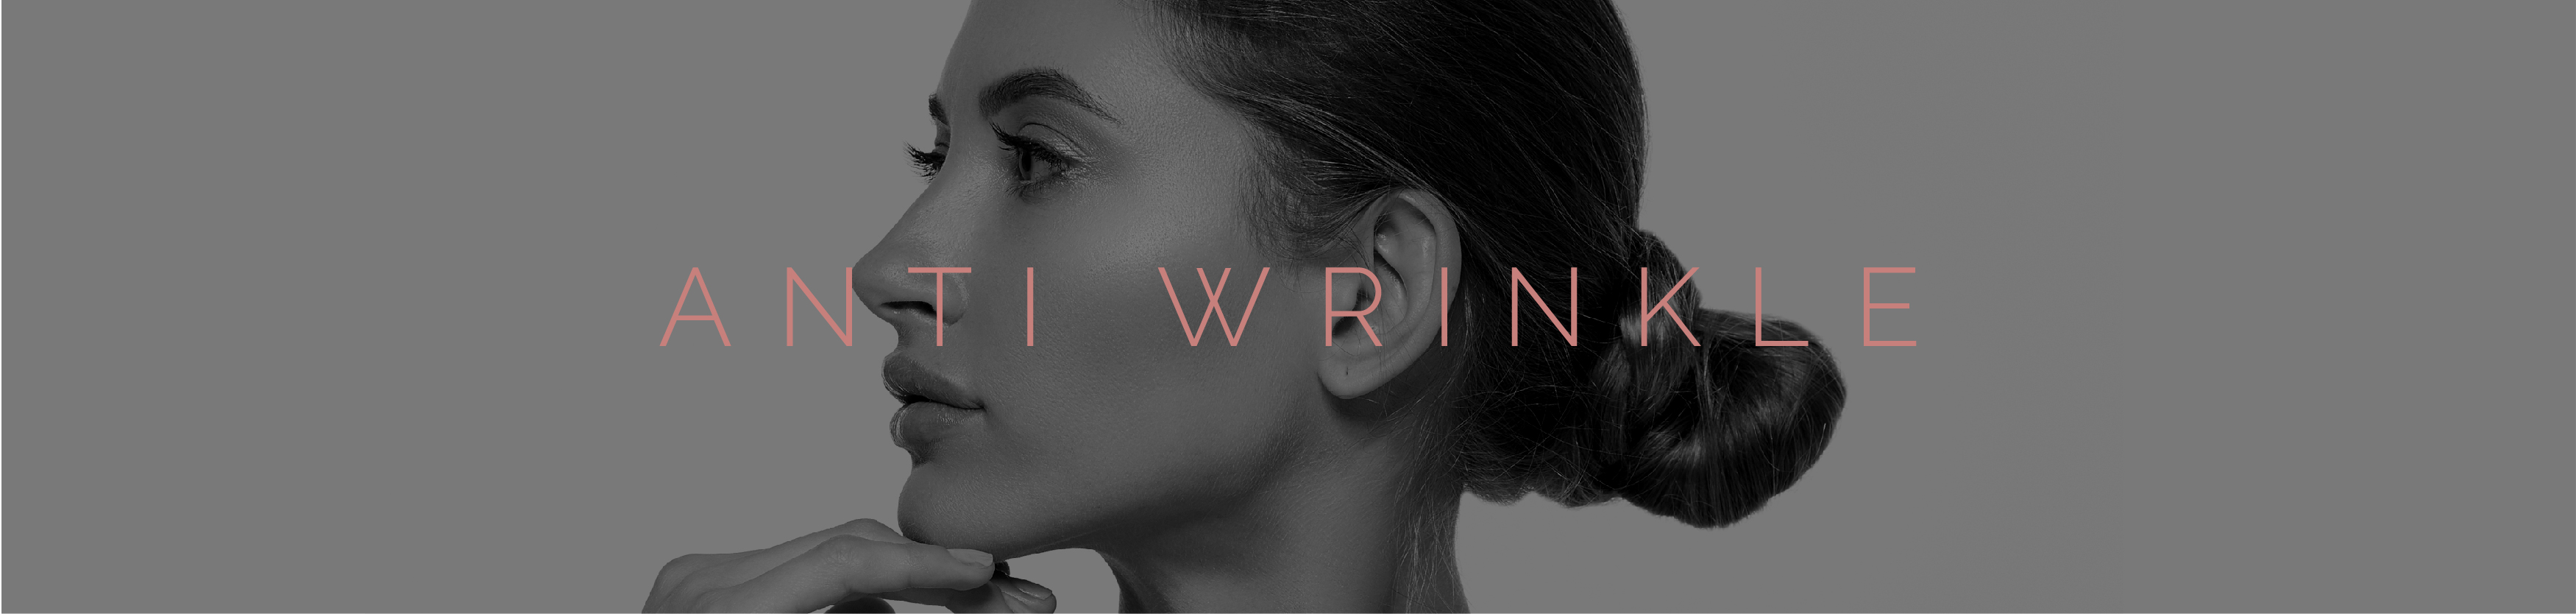 ABOUT FACE (ANTI WRINKLE)